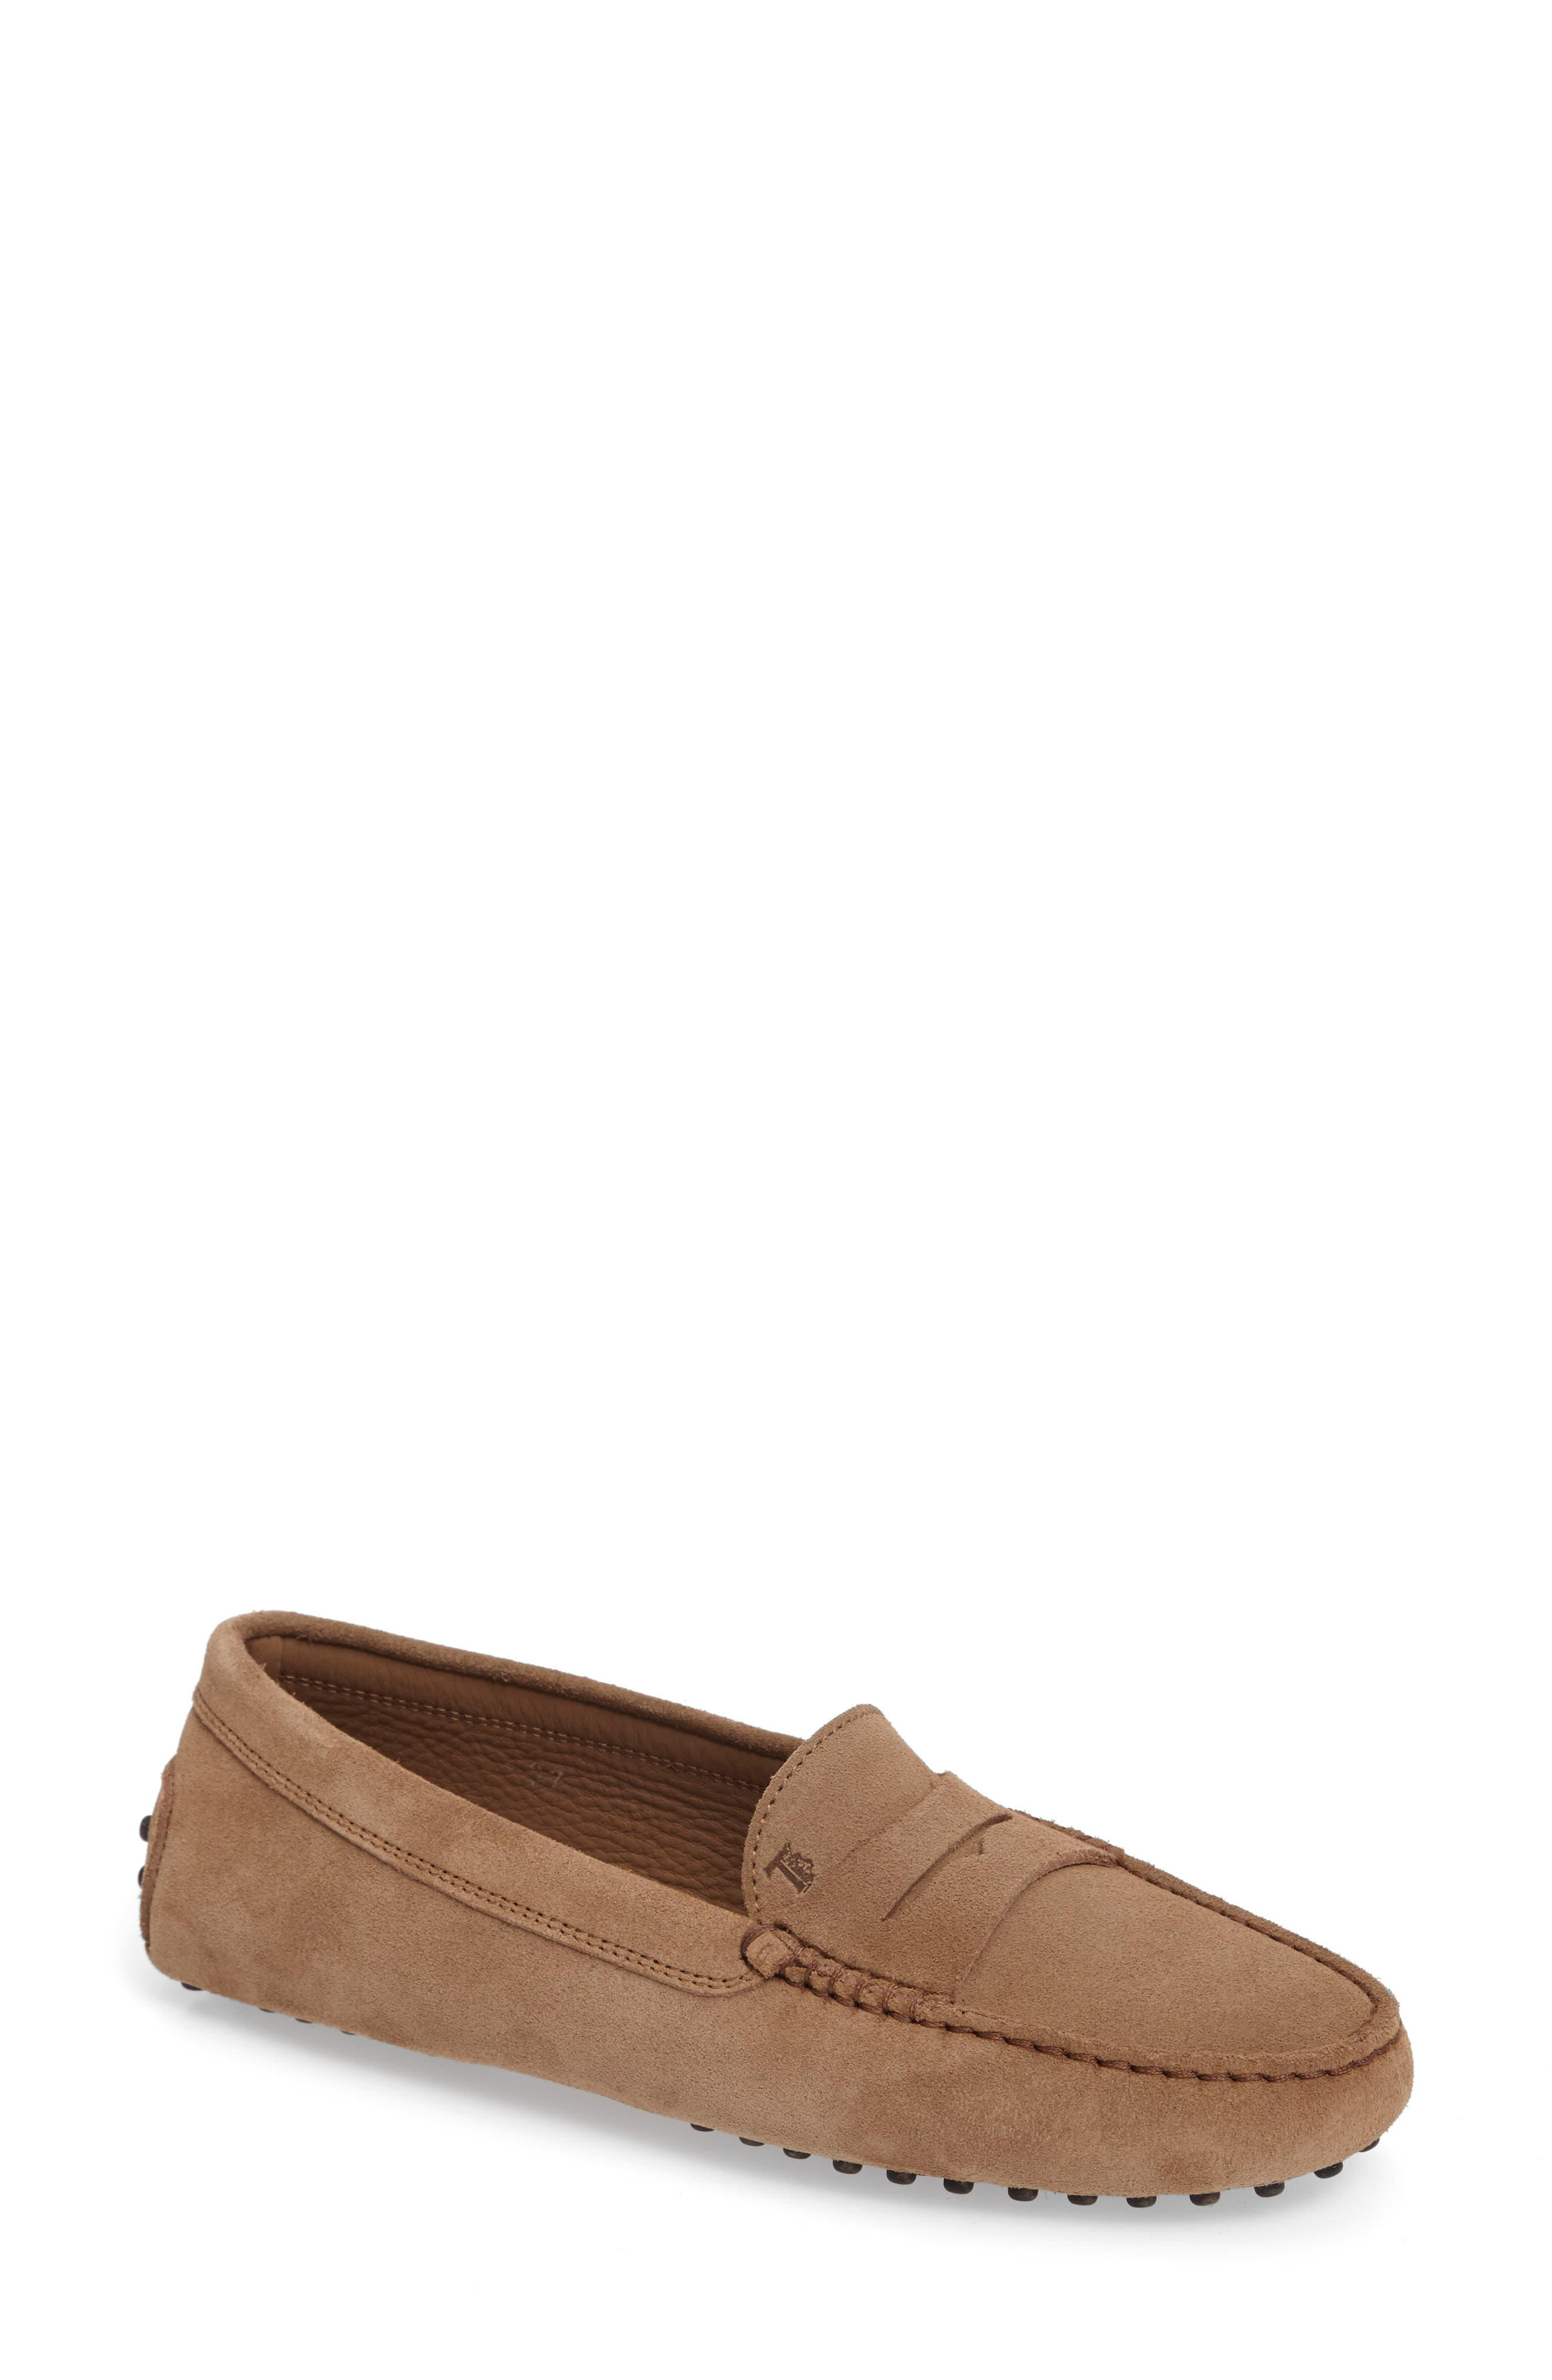 'Gommini' Moccasin, Main, color, TOBACCO